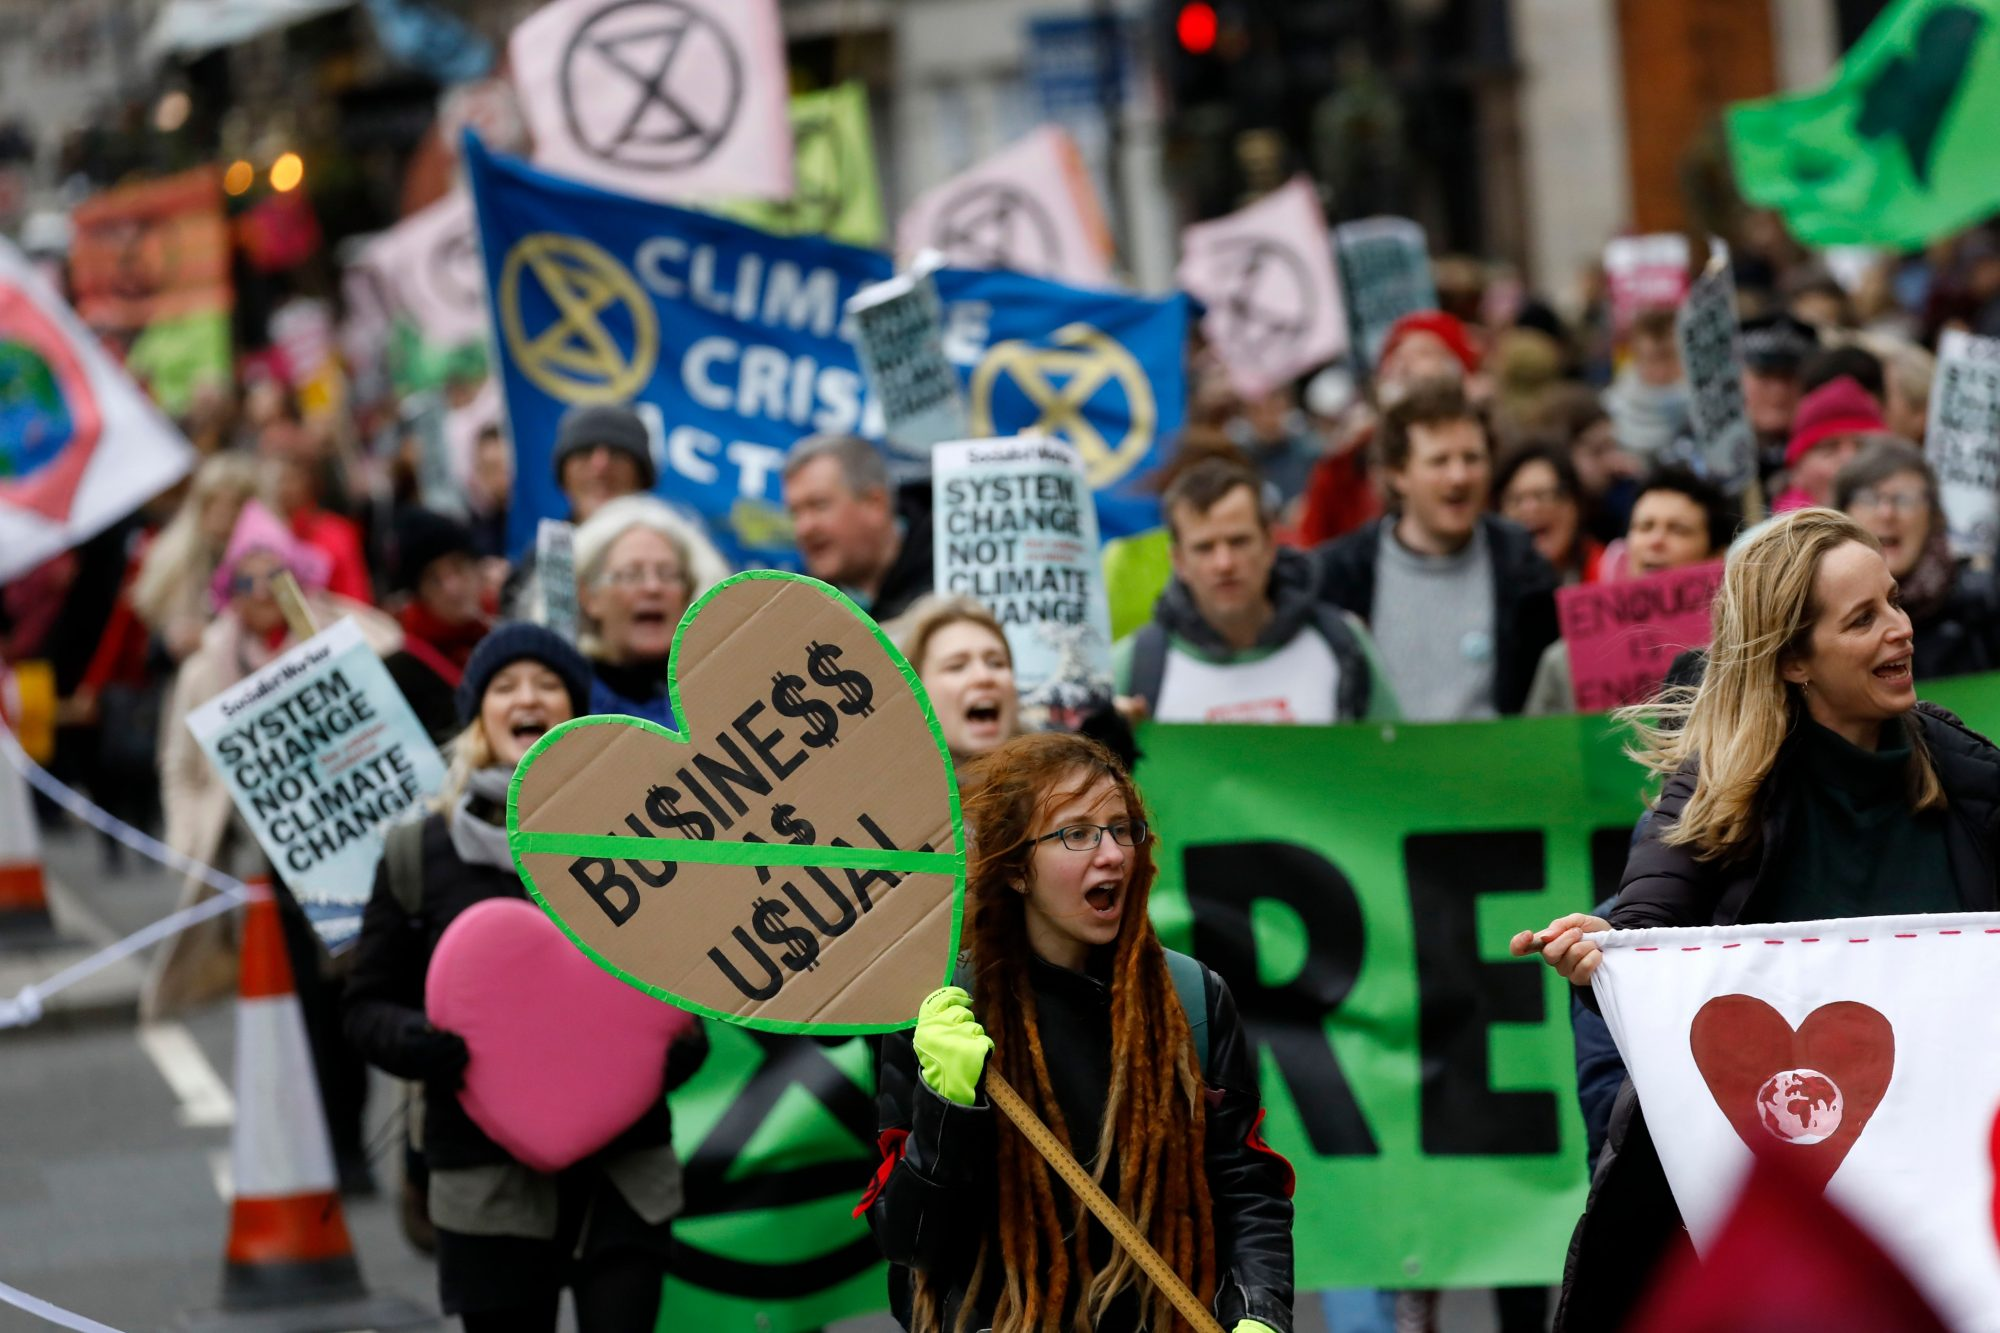 BRITAIN-ENVIRONMENT-CLIMATE-SOCIAL-PROTEST